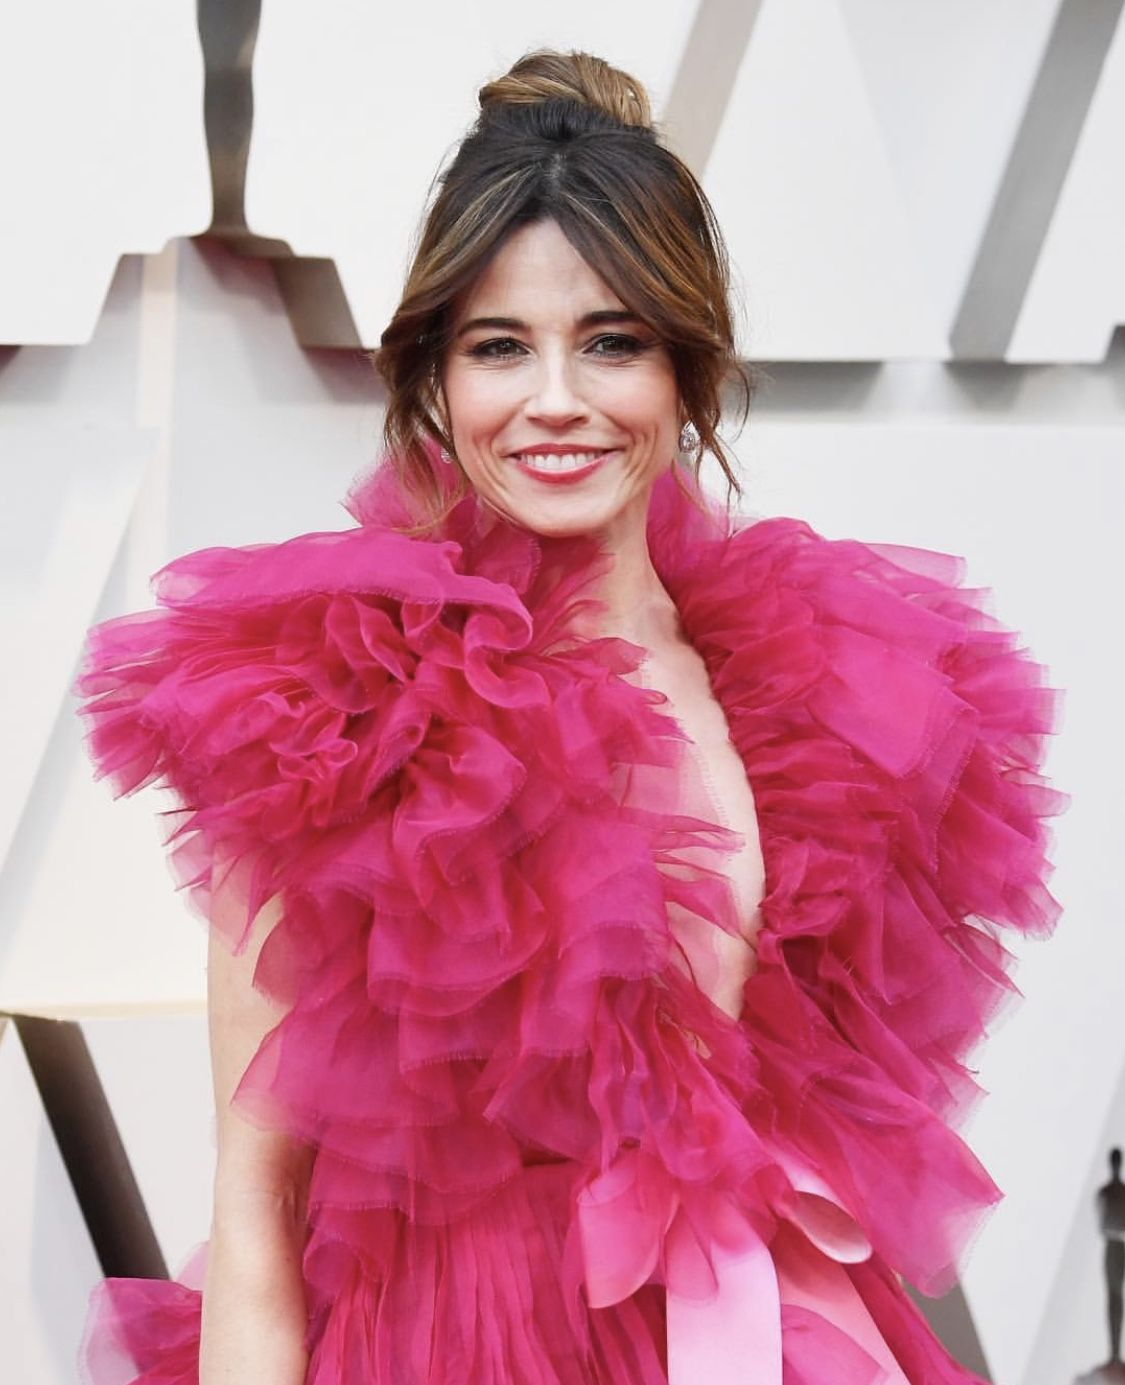 Pink Gowns Ruled The Red Carpet At The Oscars 2019